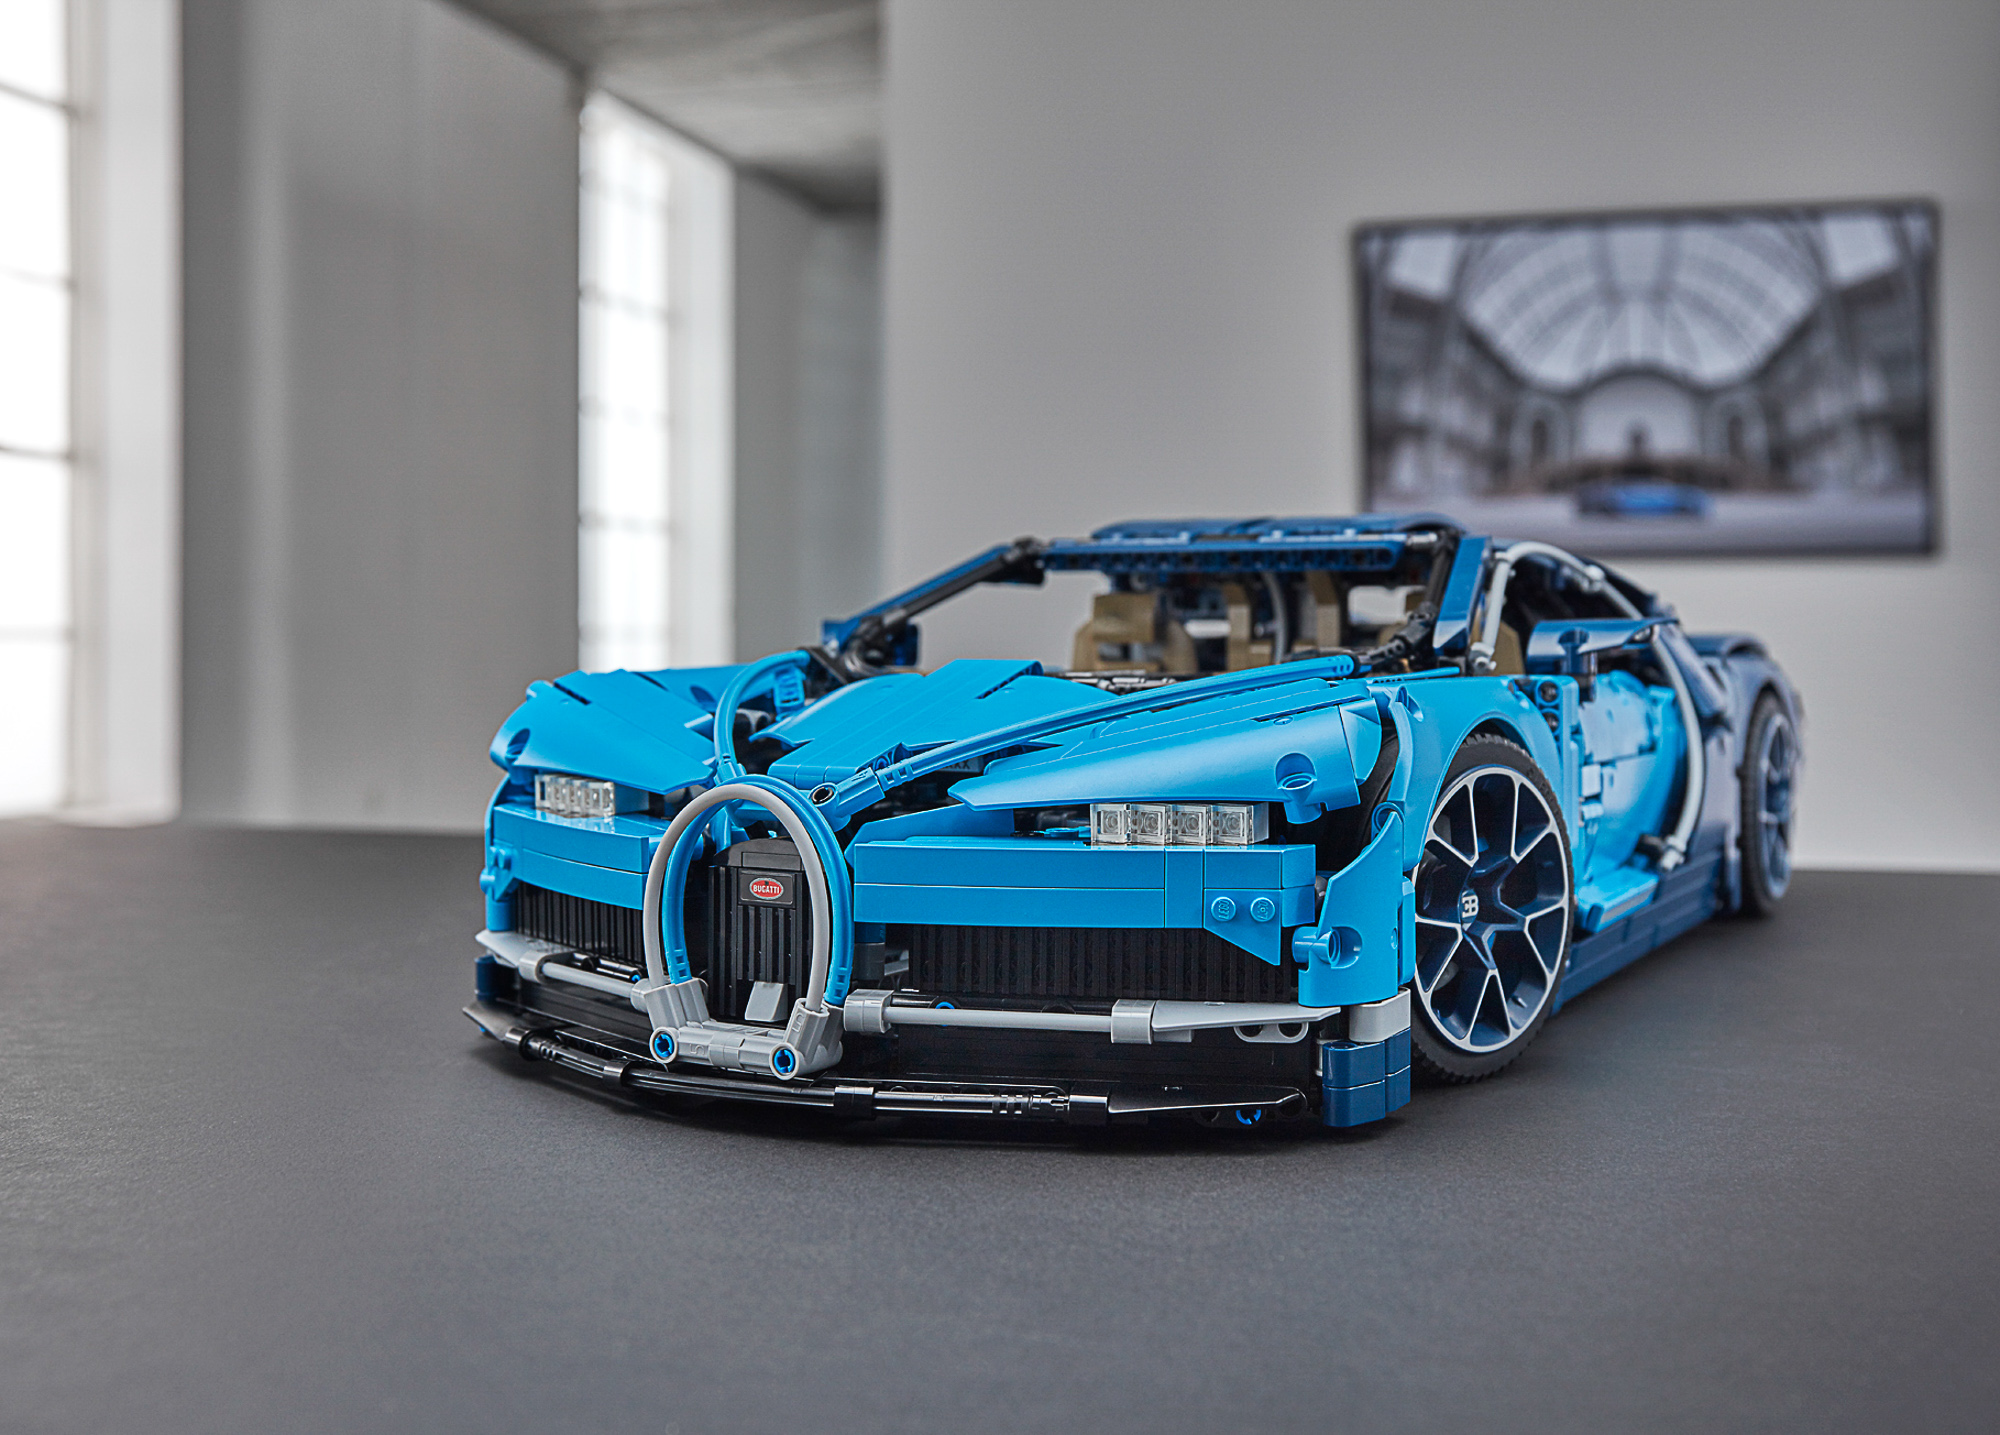 annunciata ufficialmente la bugatti chiron lego 42083. Black Bedroom Furniture Sets. Home Design Ideas